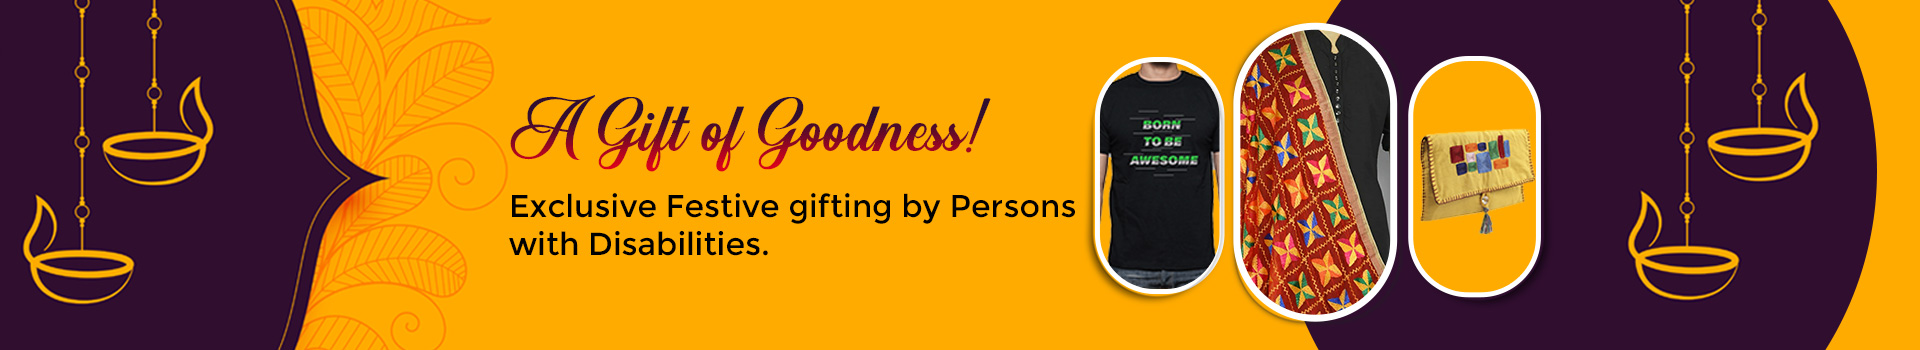 A banner with orange background and images of a black tshirt, a red dupatta, and a yellow clutch, which is the representation of our Online store section.